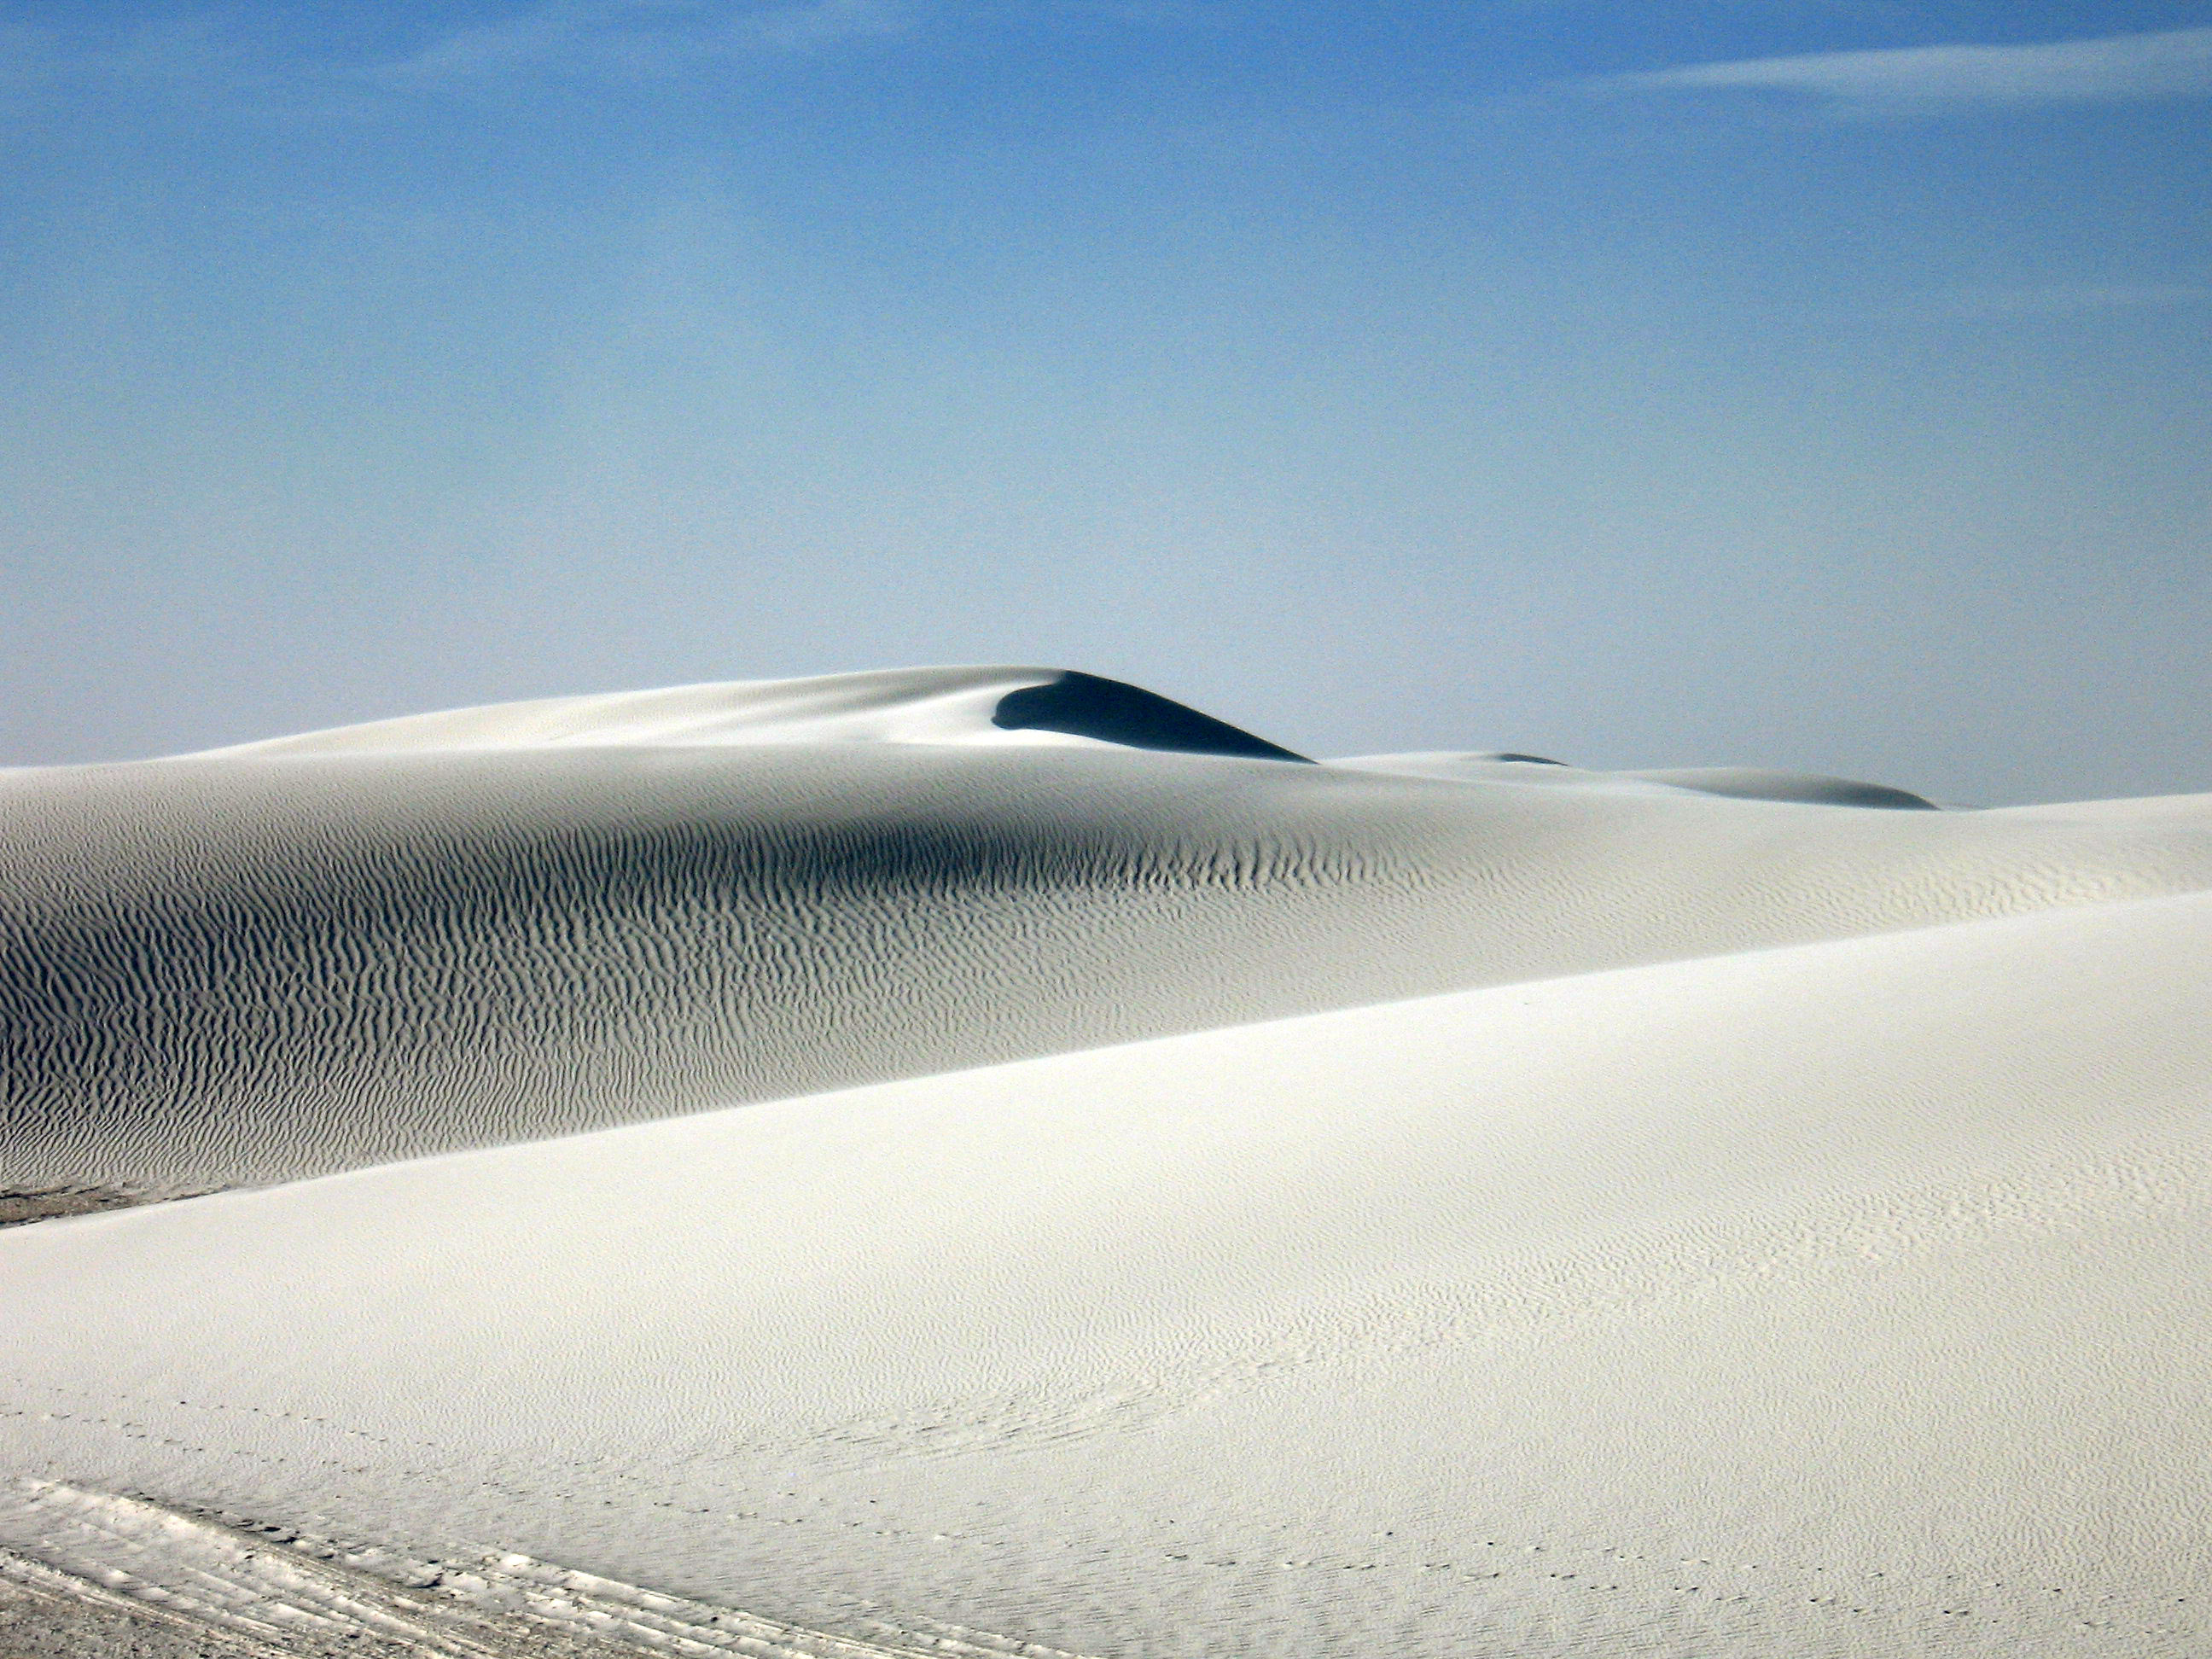 Contoured patterns in the endless white sand dunes at White Sands National Monument in New Mexico in March, 2014.